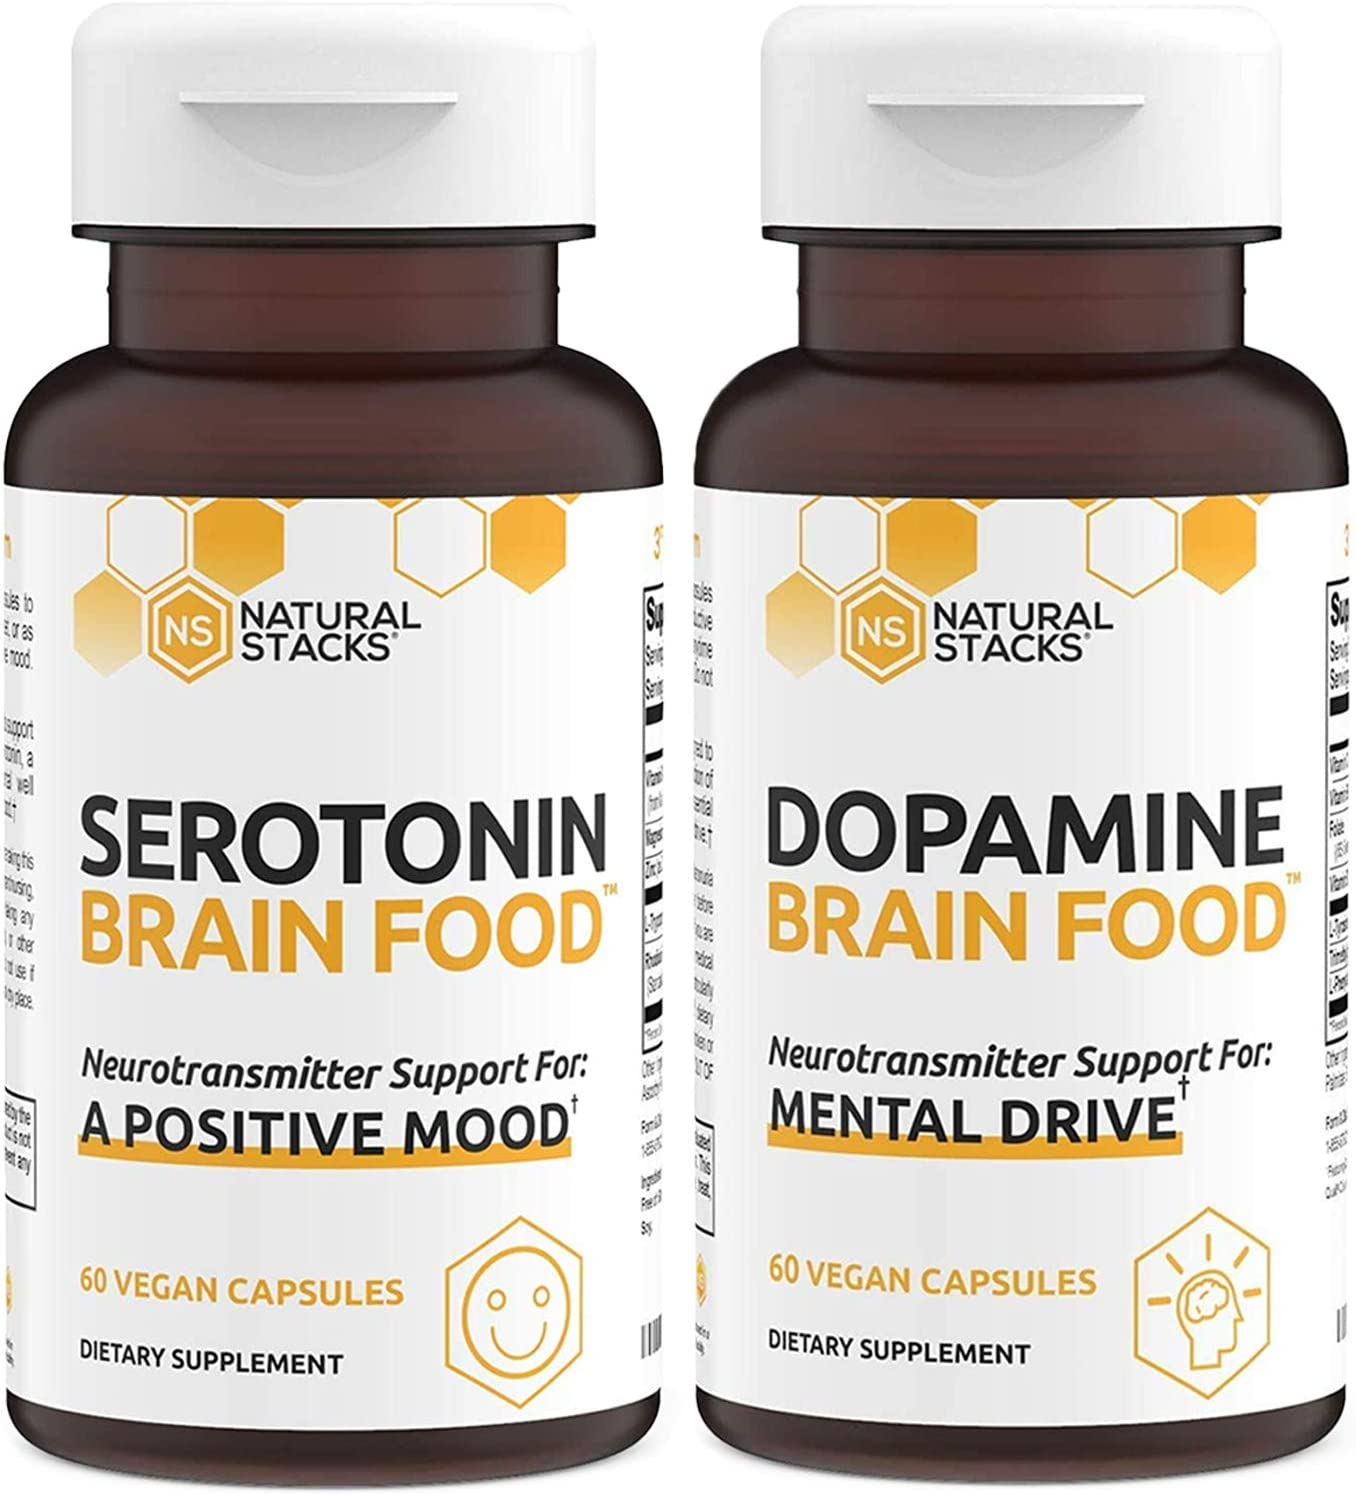 Natural Stacks Supplements - Brain Food Bundle - Dopamine (60ct) and Serotonin (60ct) - Increased Motivation and Alertness, Better Mood and Relaxation